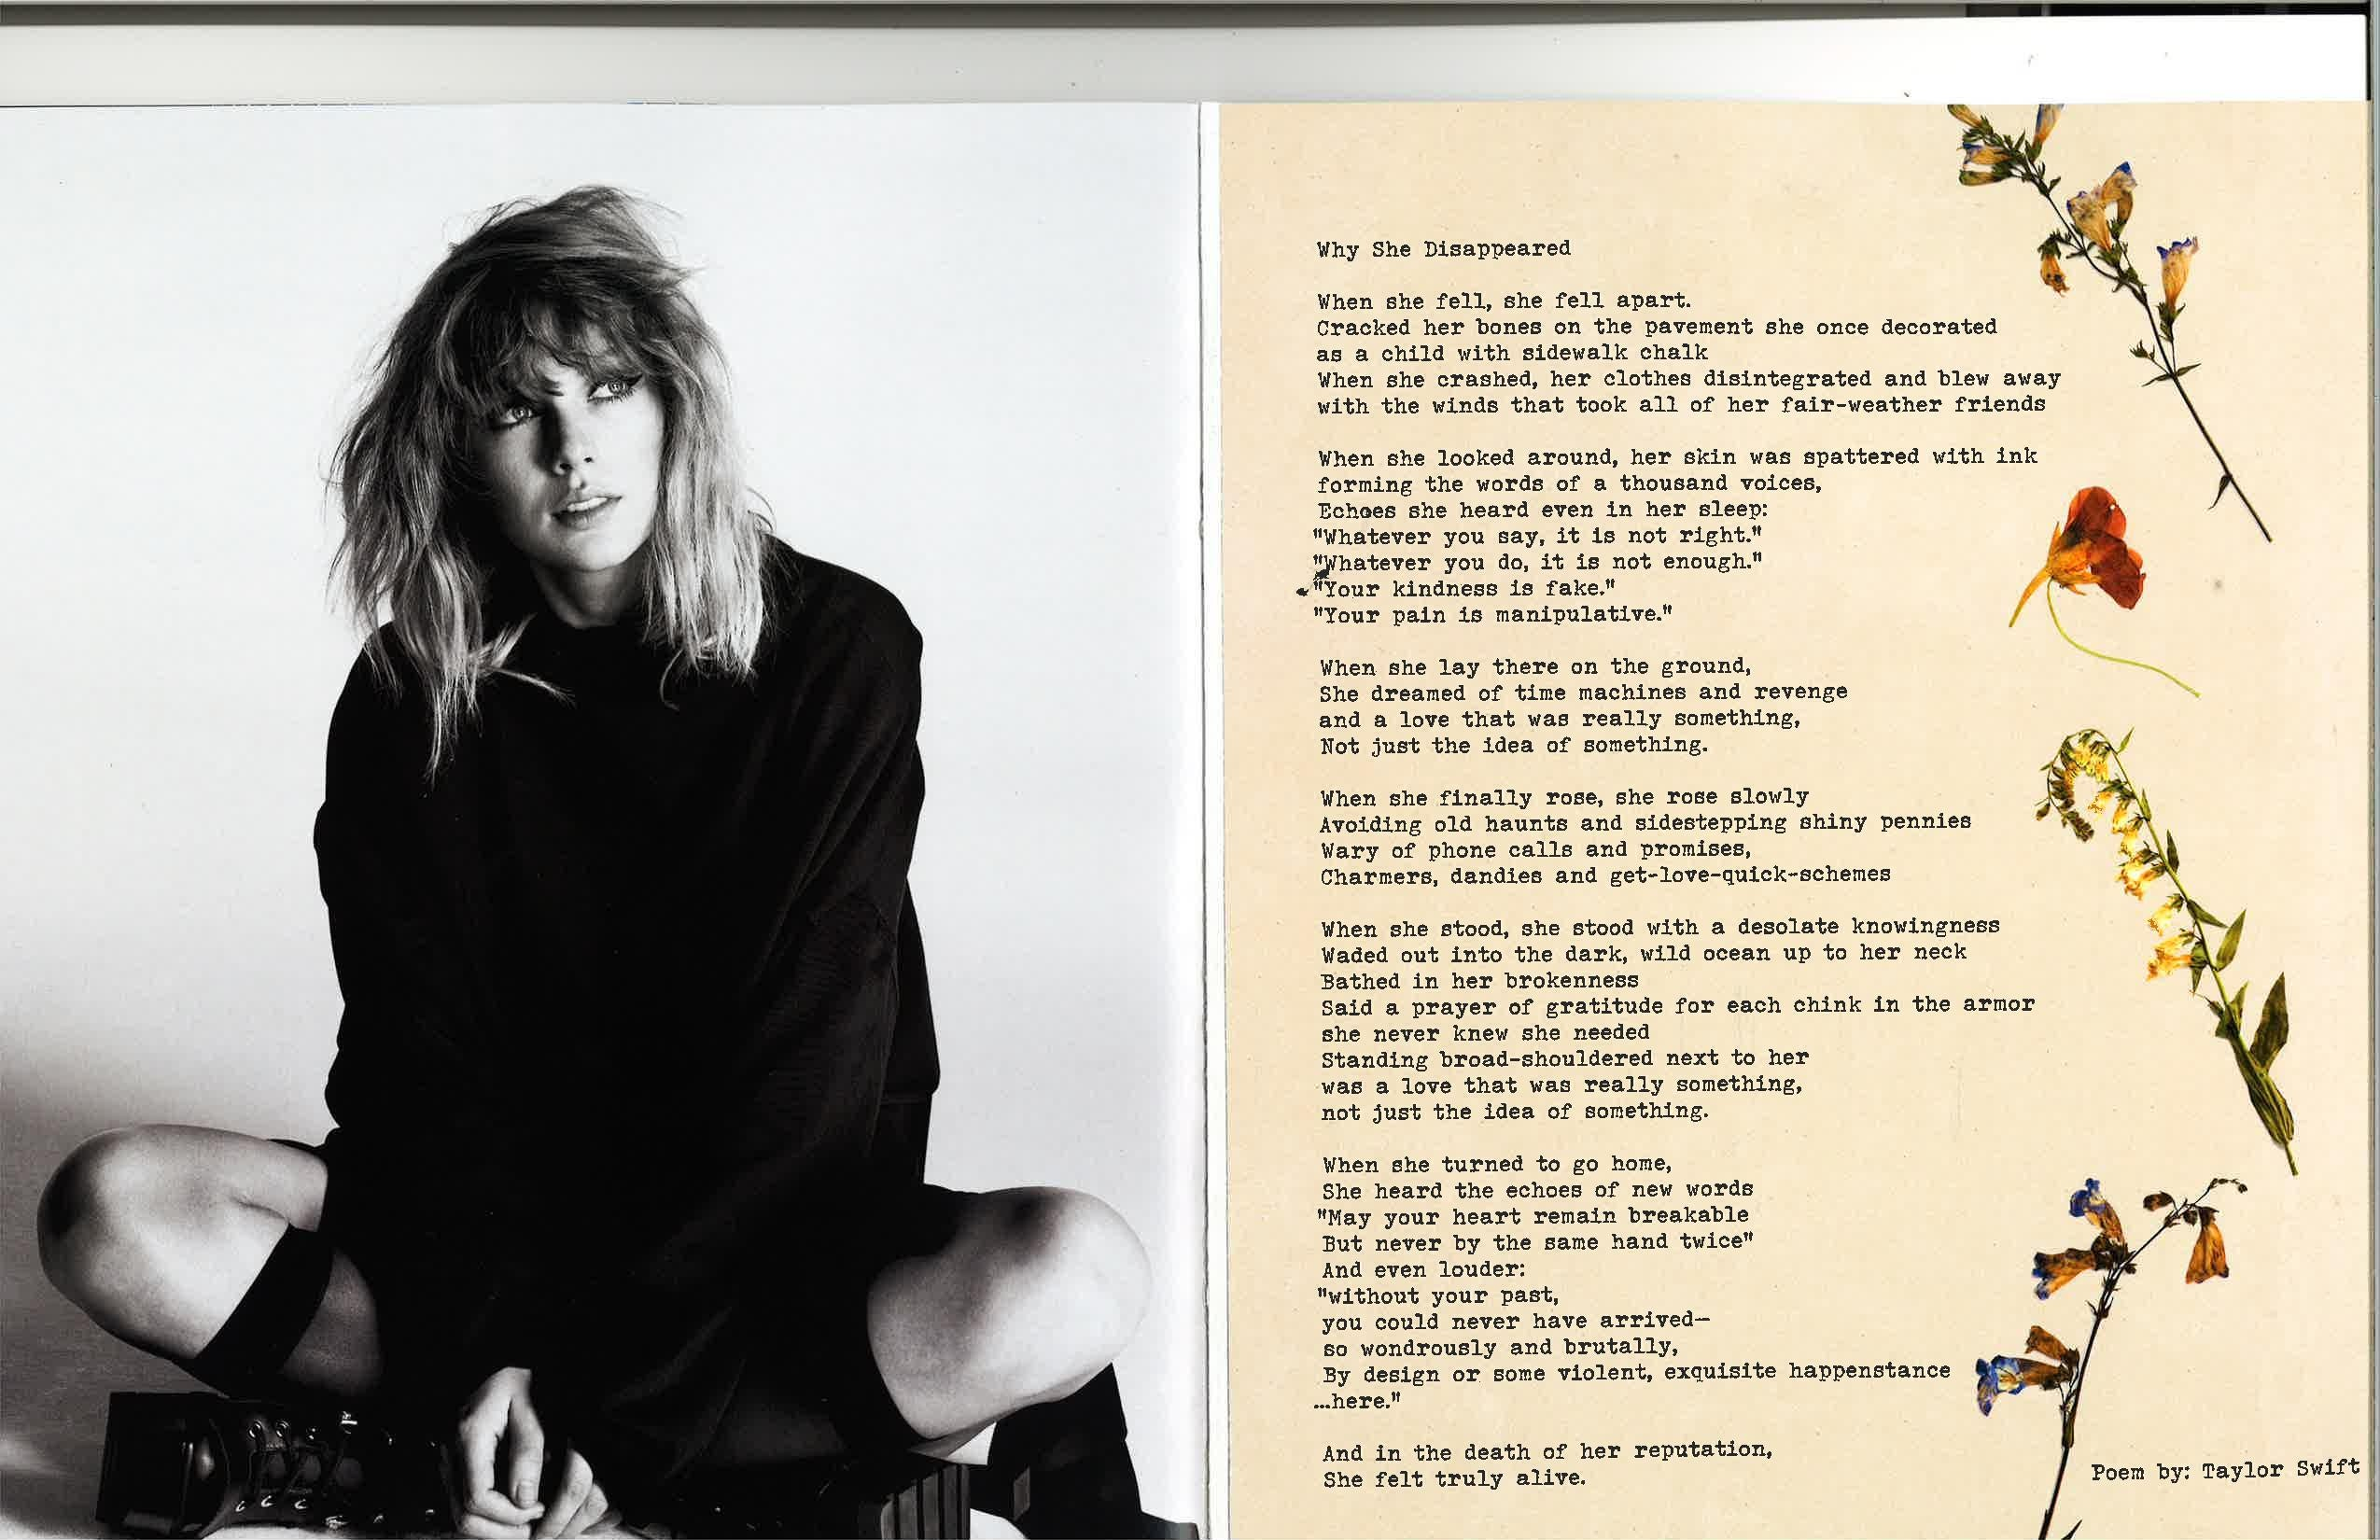 Taylor Swift Poem Why She Disappeared Reputation